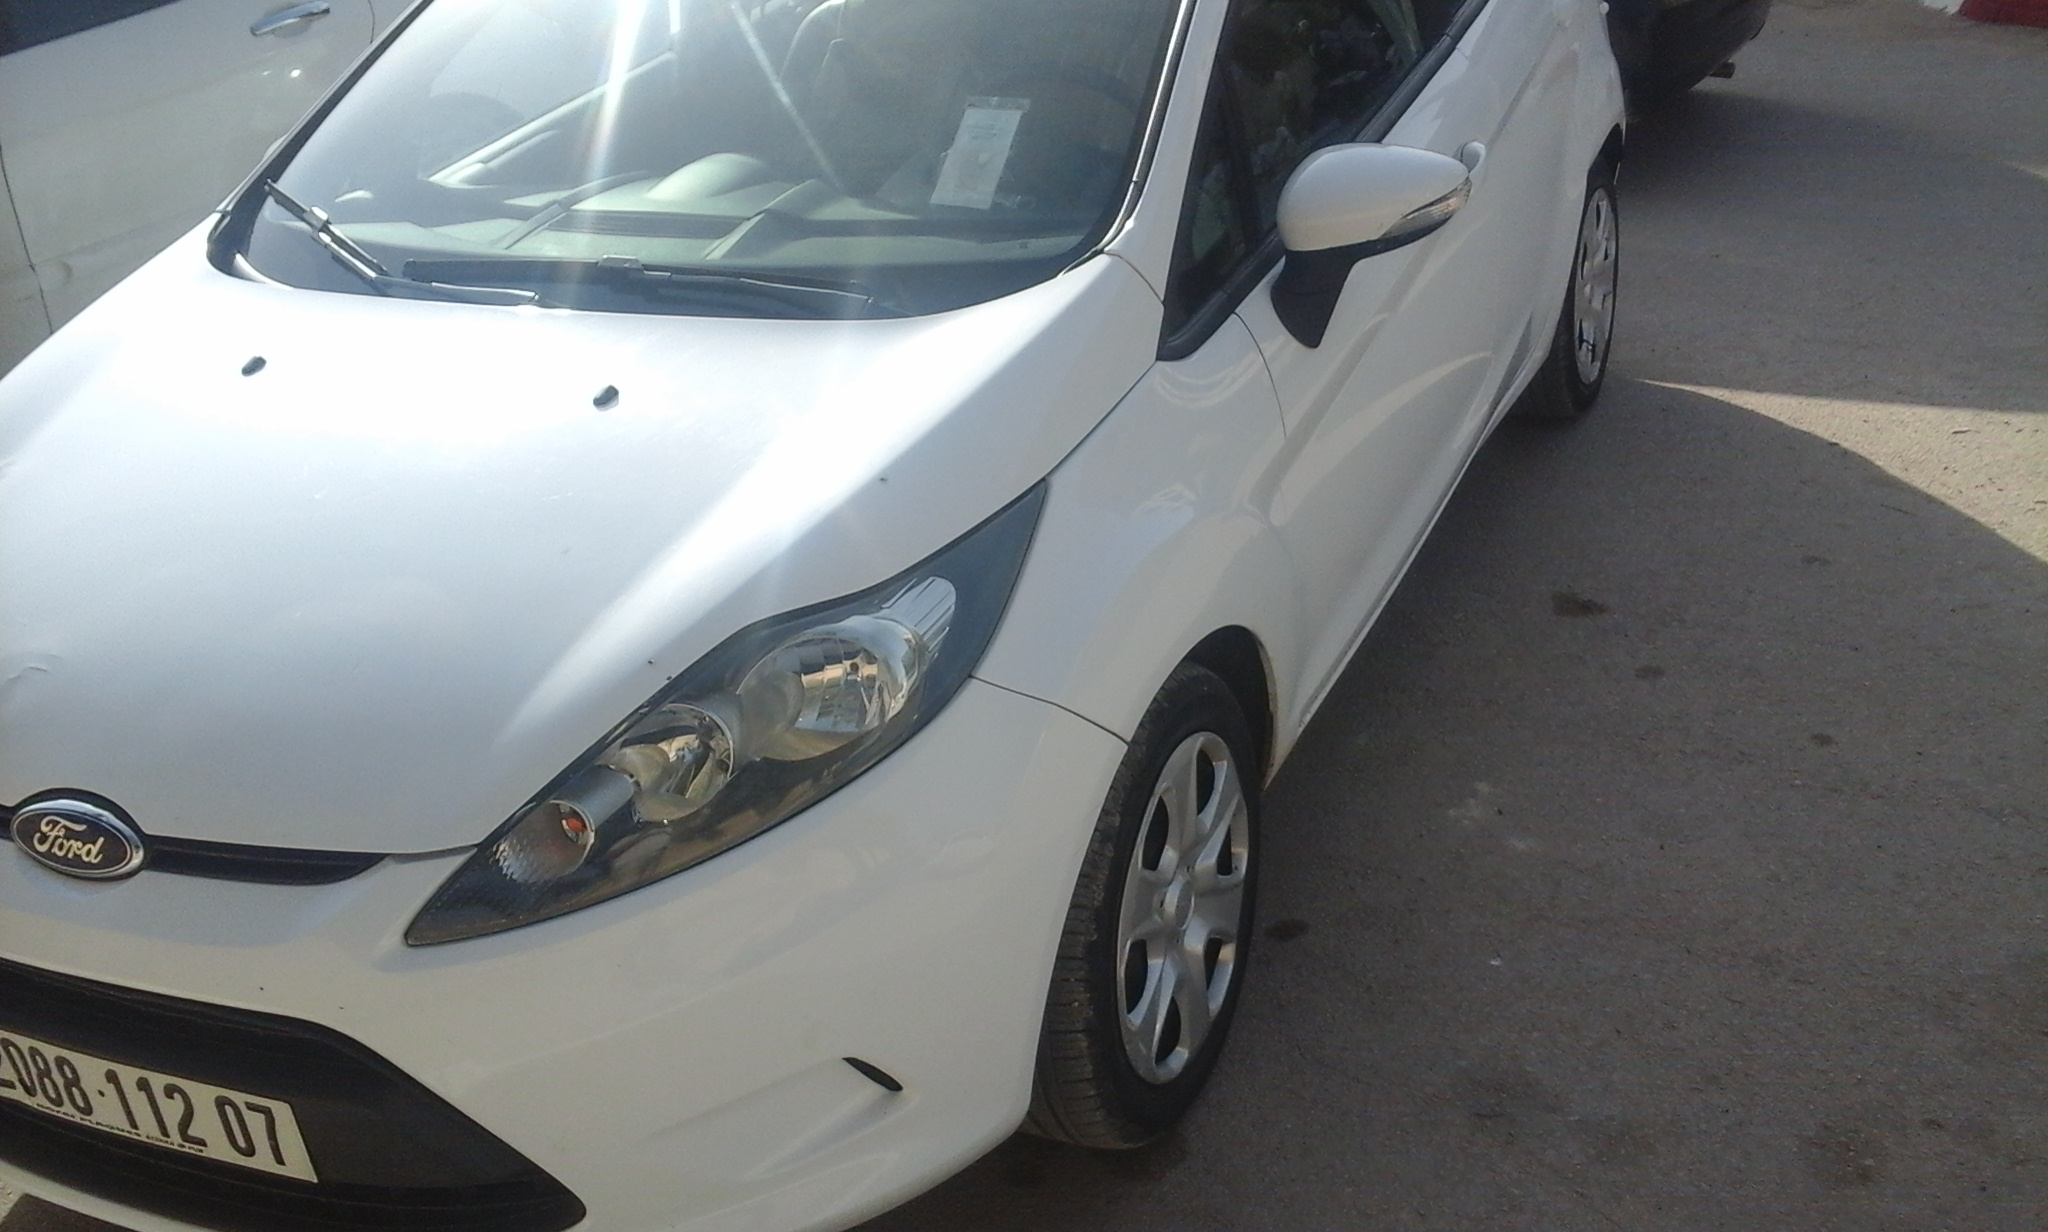 Ford Fiesta 2012 1.25 Ess 82 ch ouedkniss